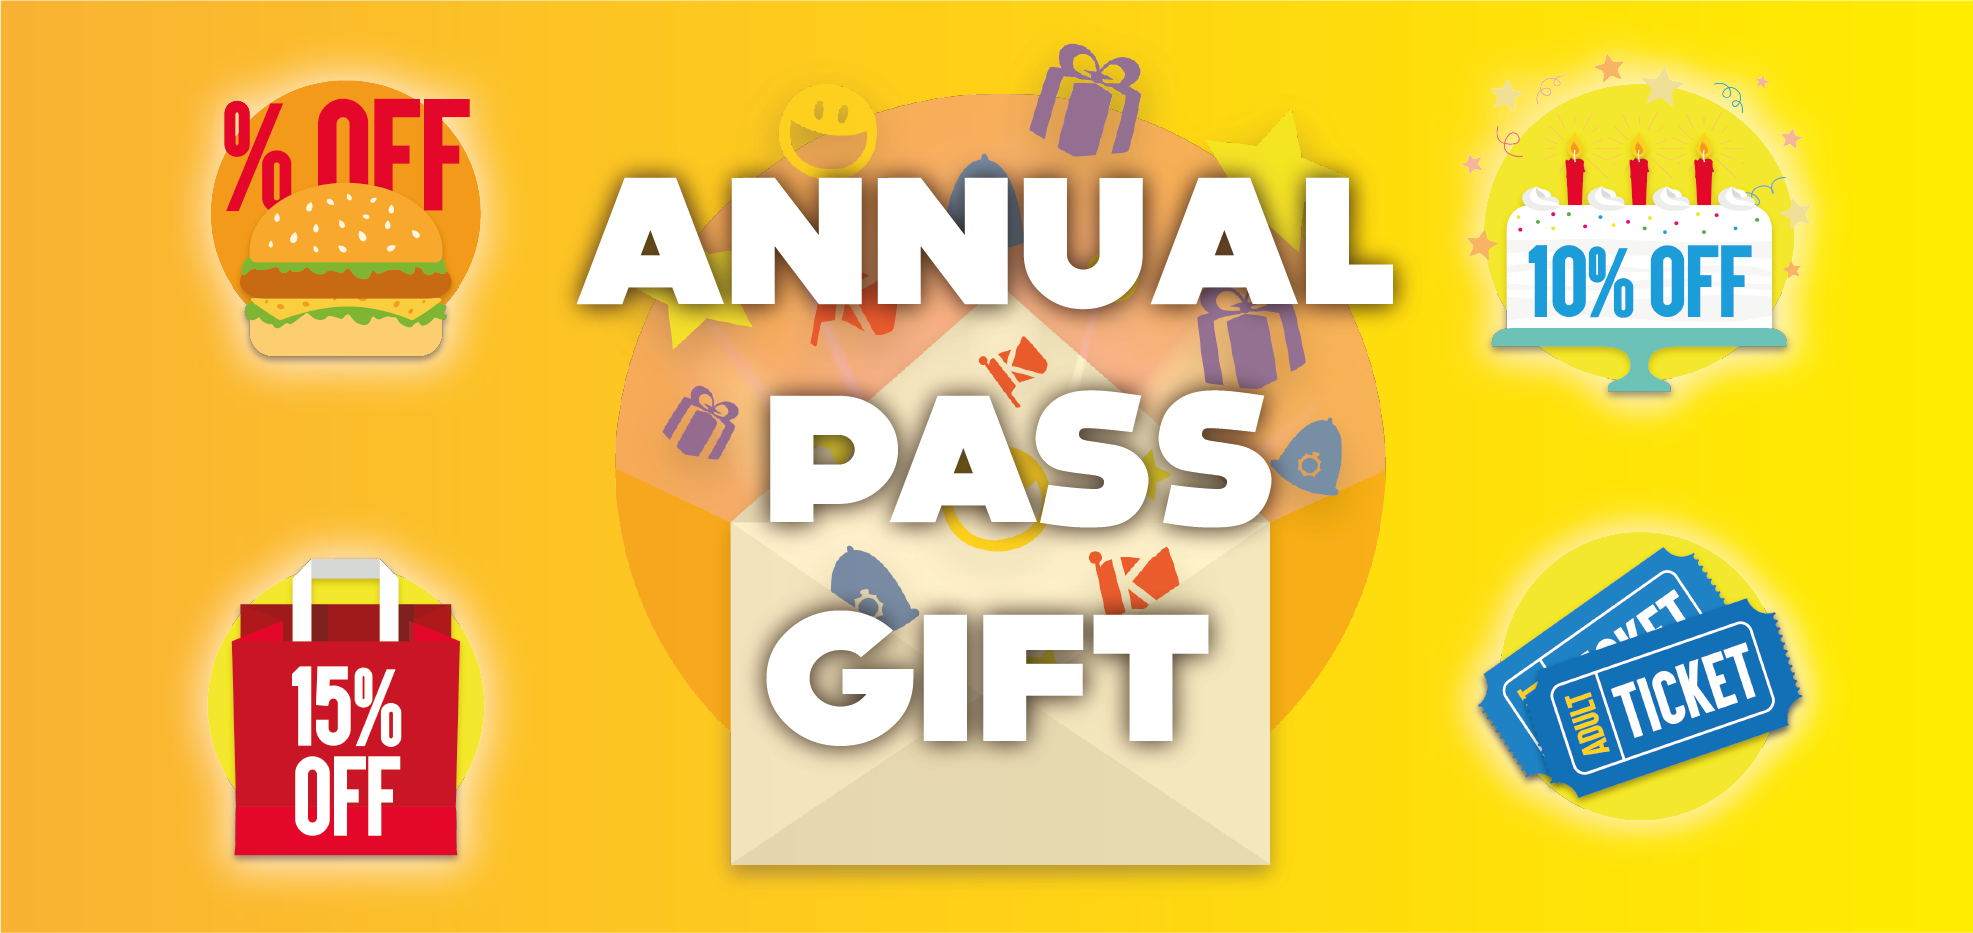 Annual Pass Gift